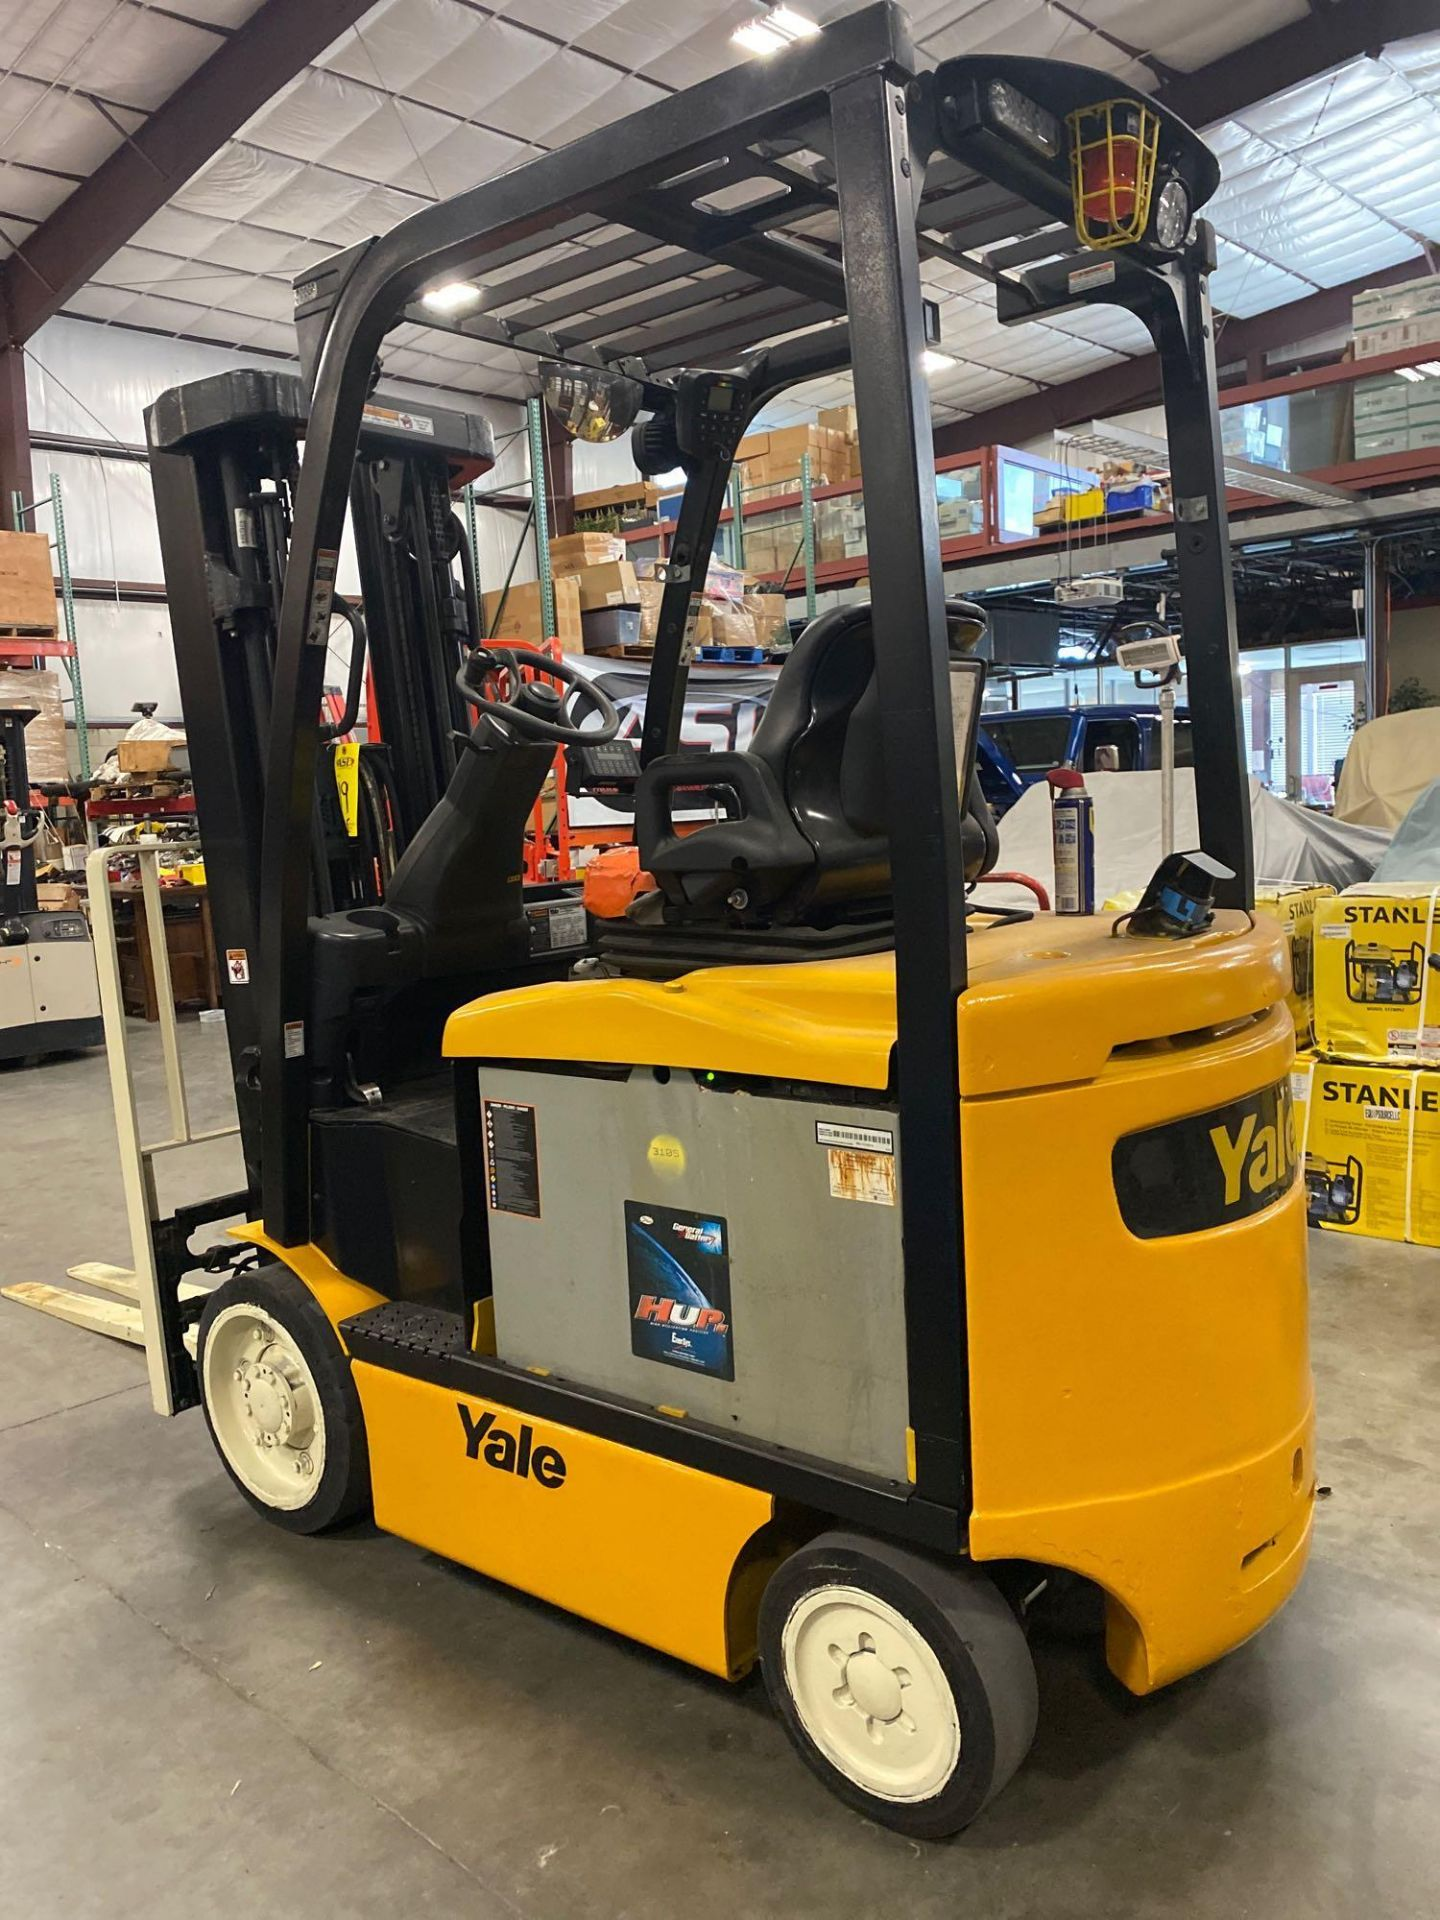 """Lot 19 - YALE ELECTRIC FORKLIFT MODEL ERCO50VGN36TE088, 36V, 200.8"""" HEIGHT CAPACITY, APPROX. 5,000 LB CAPACIT"""